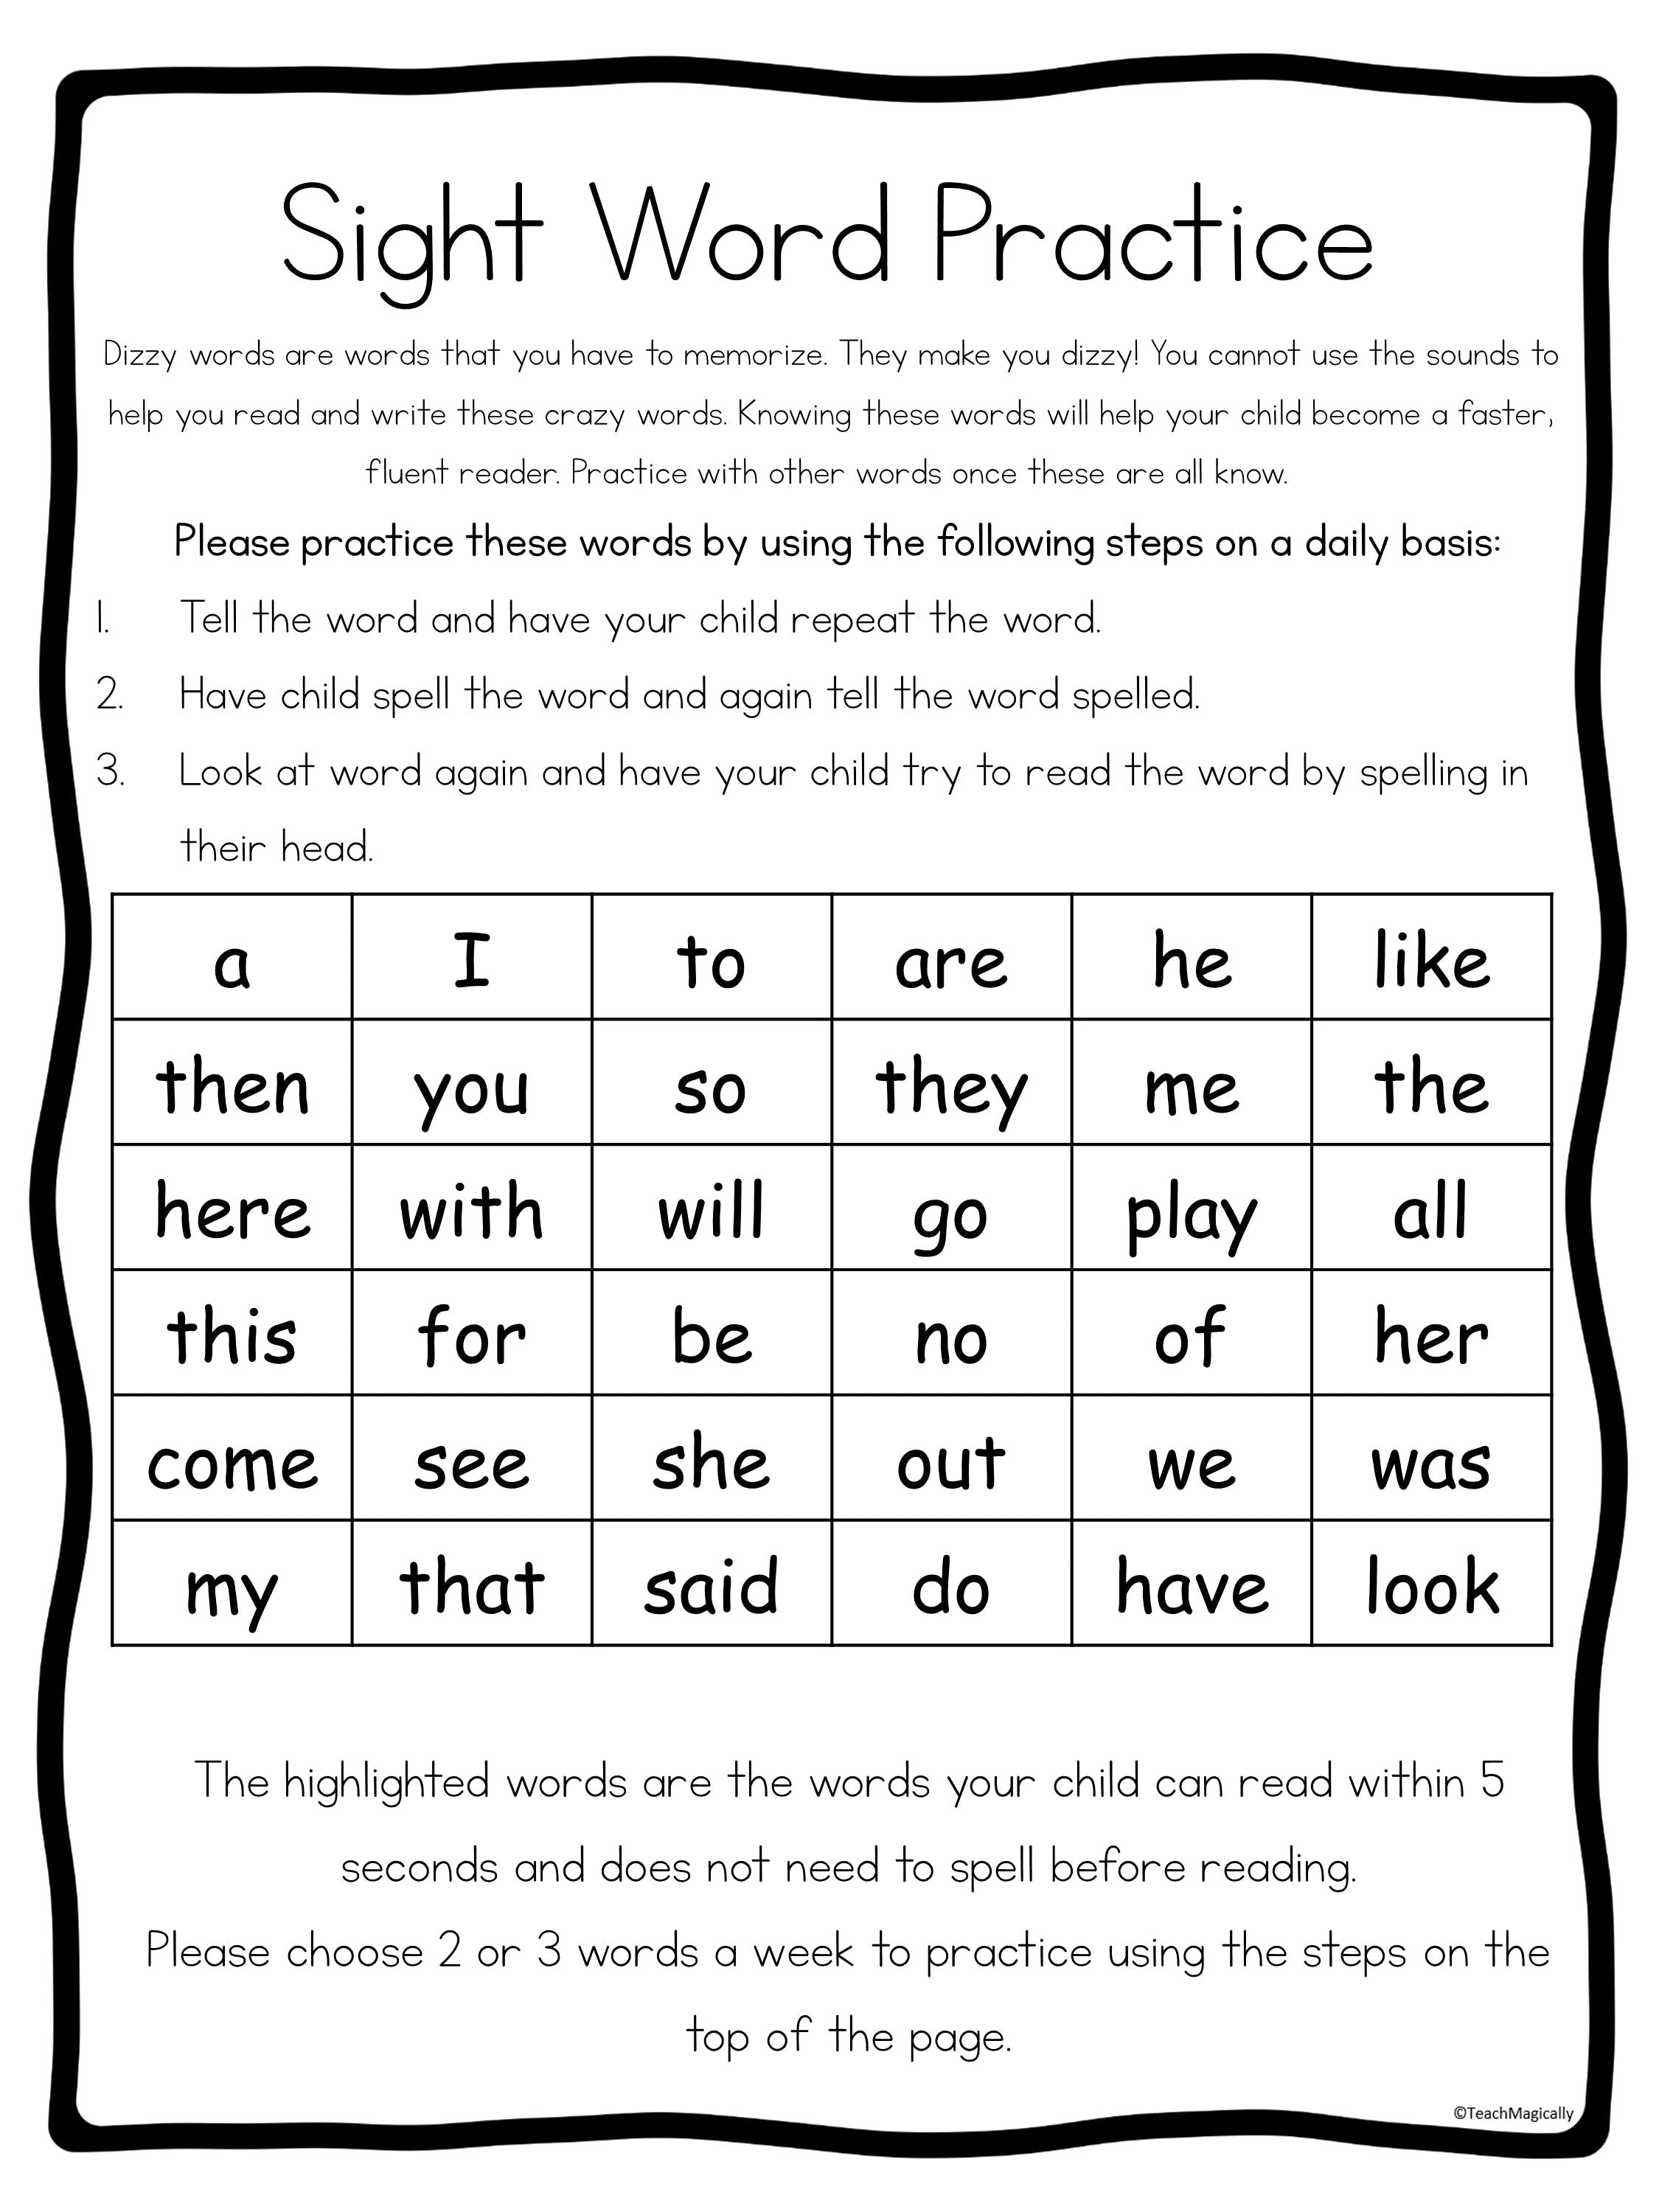 Dizzy Sight Word Practice Family Note